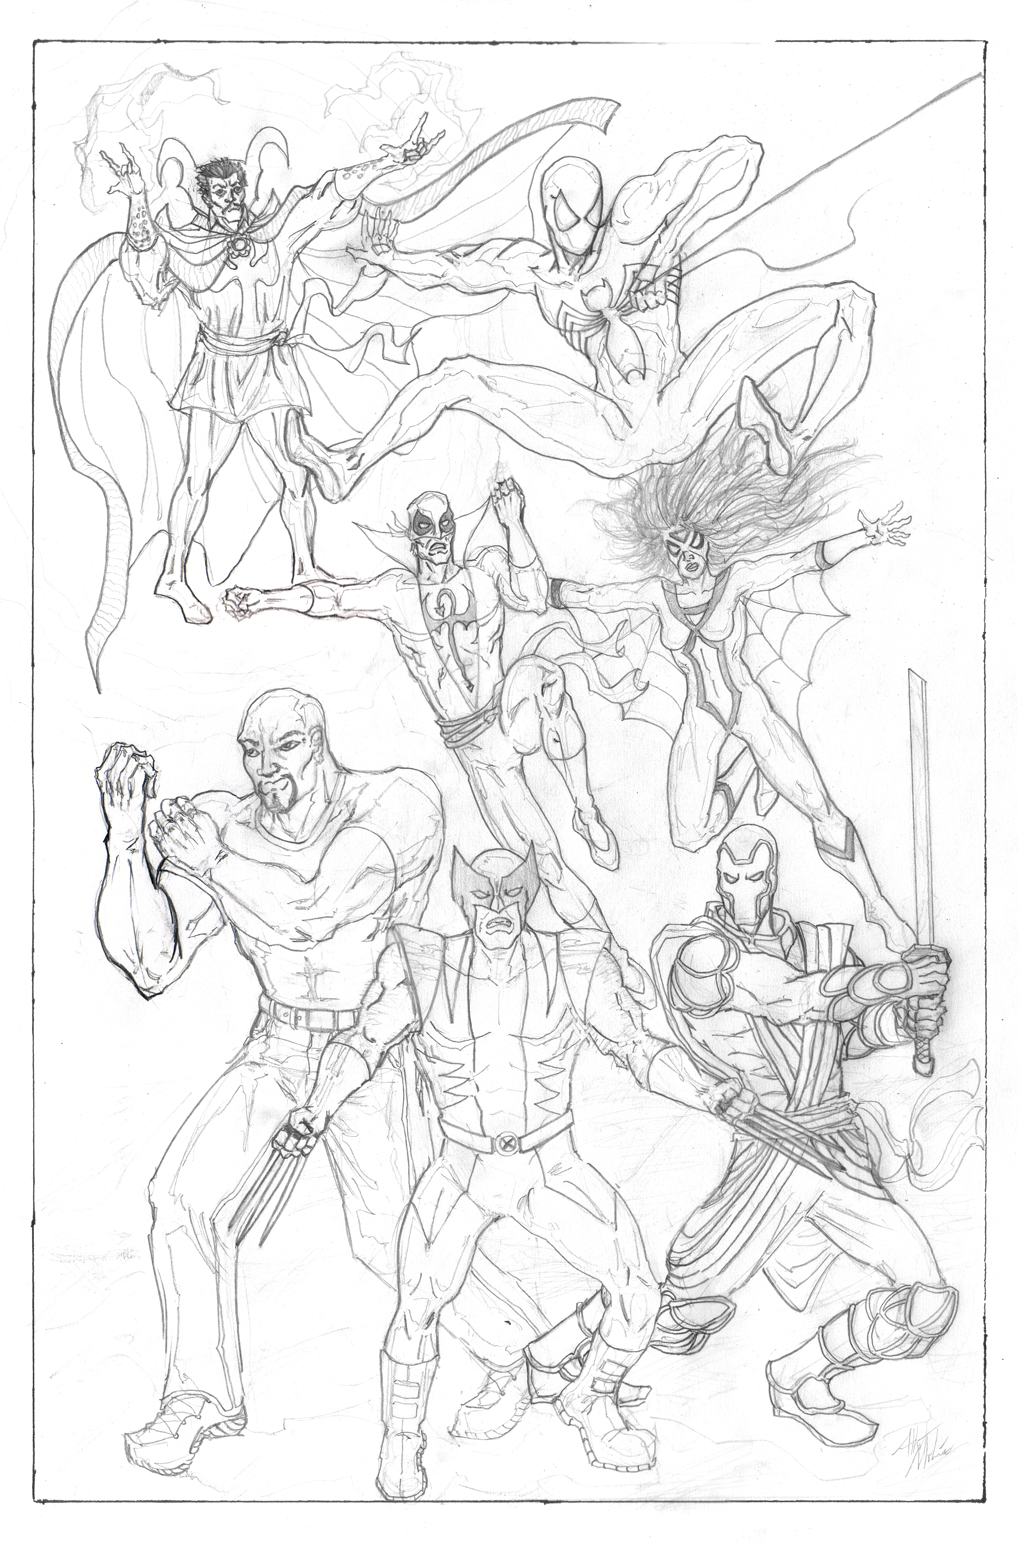 New Avengers Sketch By Albiemo On DeviantART